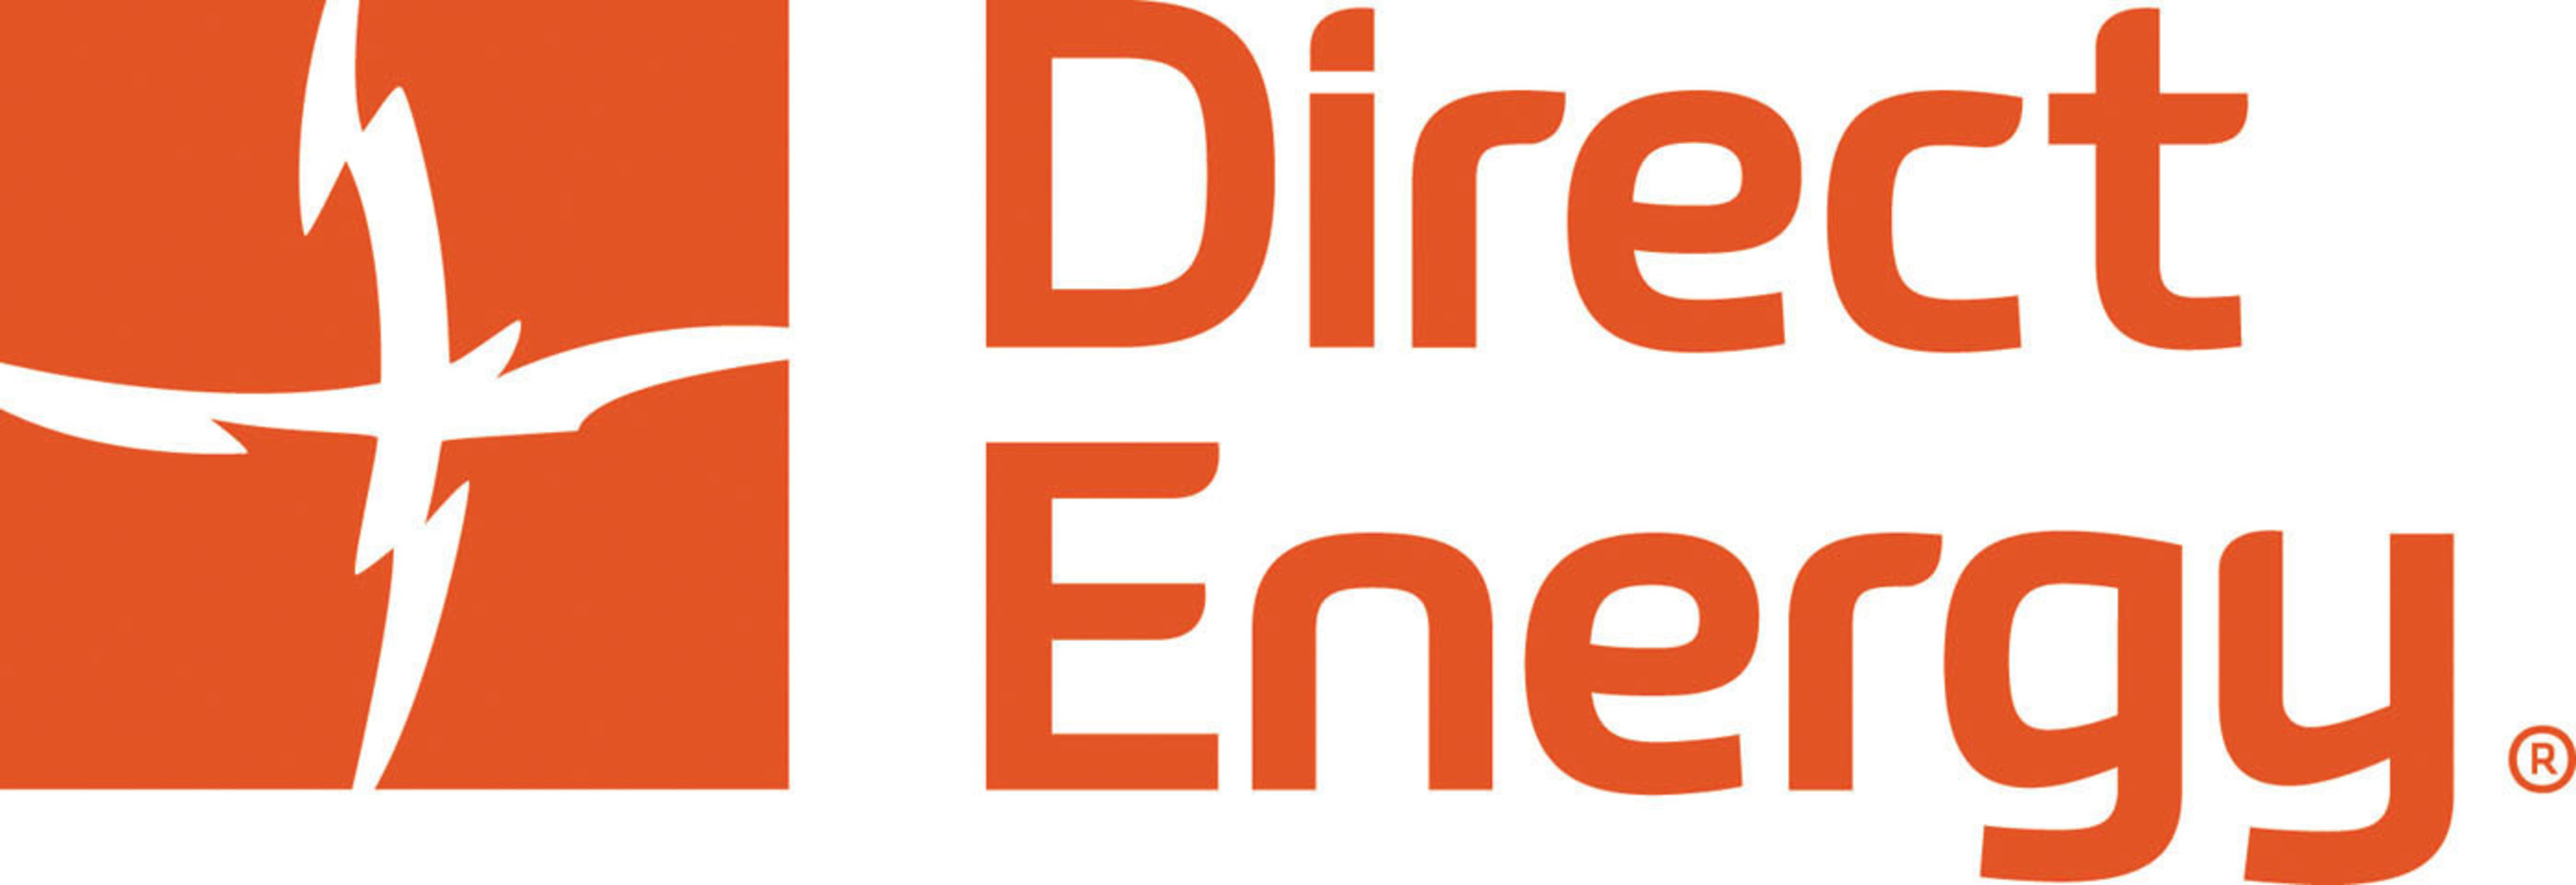 State Of Delaware Welcomes Direct Energy As An Innovative Power Supplier